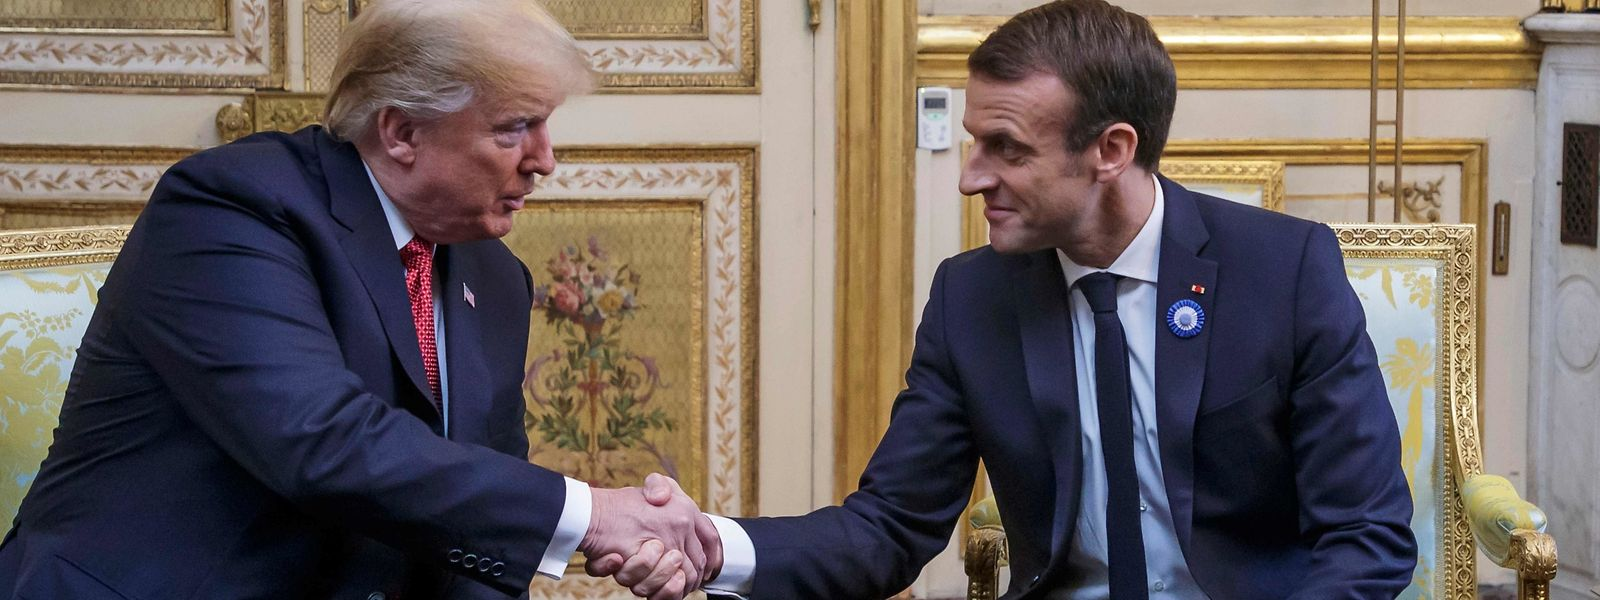 US President Donald Trump (L) shakes hands with French president Emmanuel Macron prior to their meeting at the Elysee Palace in Paris, on November 10, 2018, on the sidelines of commemorations marking the 100th anniversary of the 11 November 1918 armistice, ending World War I. (Photo by Christophe Petit-Tesson / POOL / AFP)